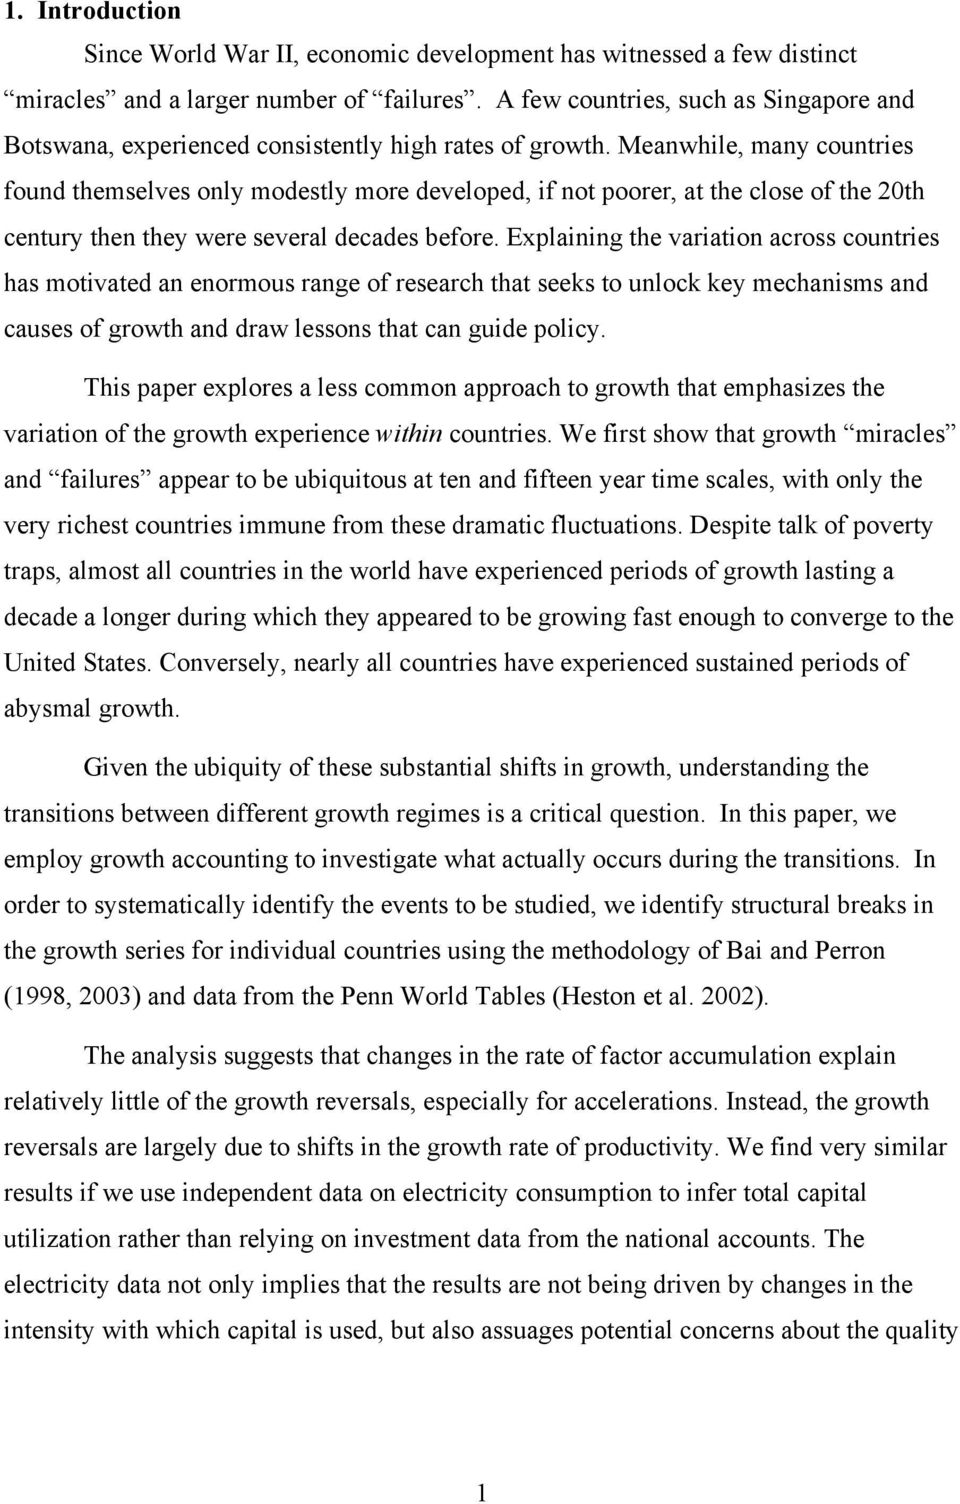 Meanwhile, many countries found themselves only modestly more developed, if not poorer, at the close of the 20th century then they were several decades before.